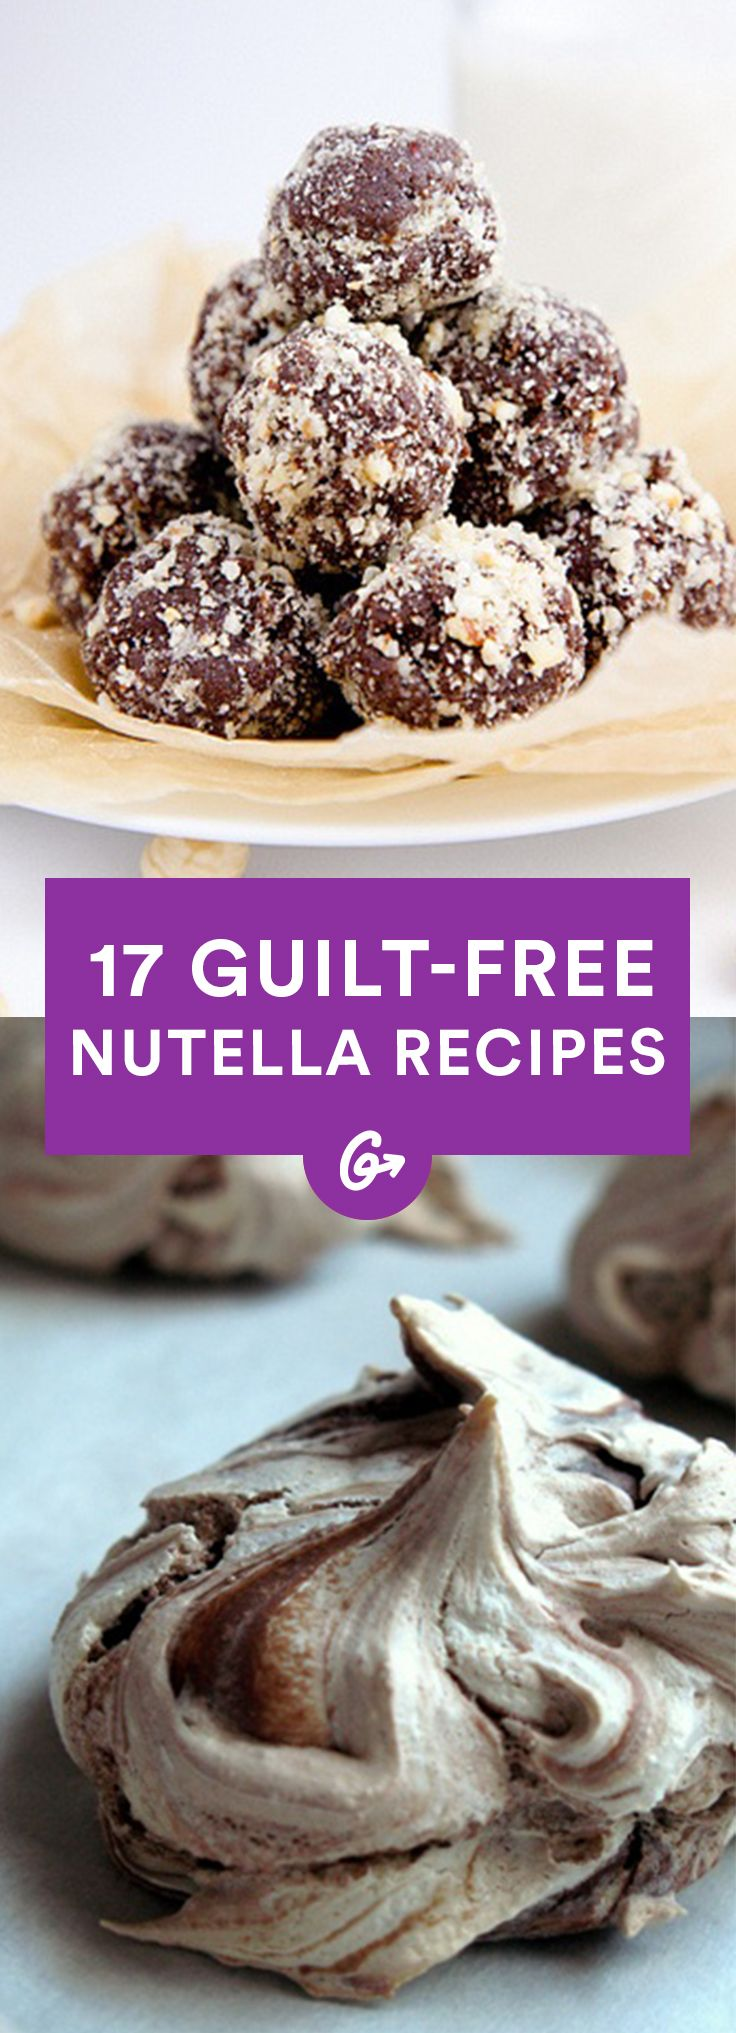 *Drools* #nutella #desserts http://greatist.com/health/healthy-nutella-recipes